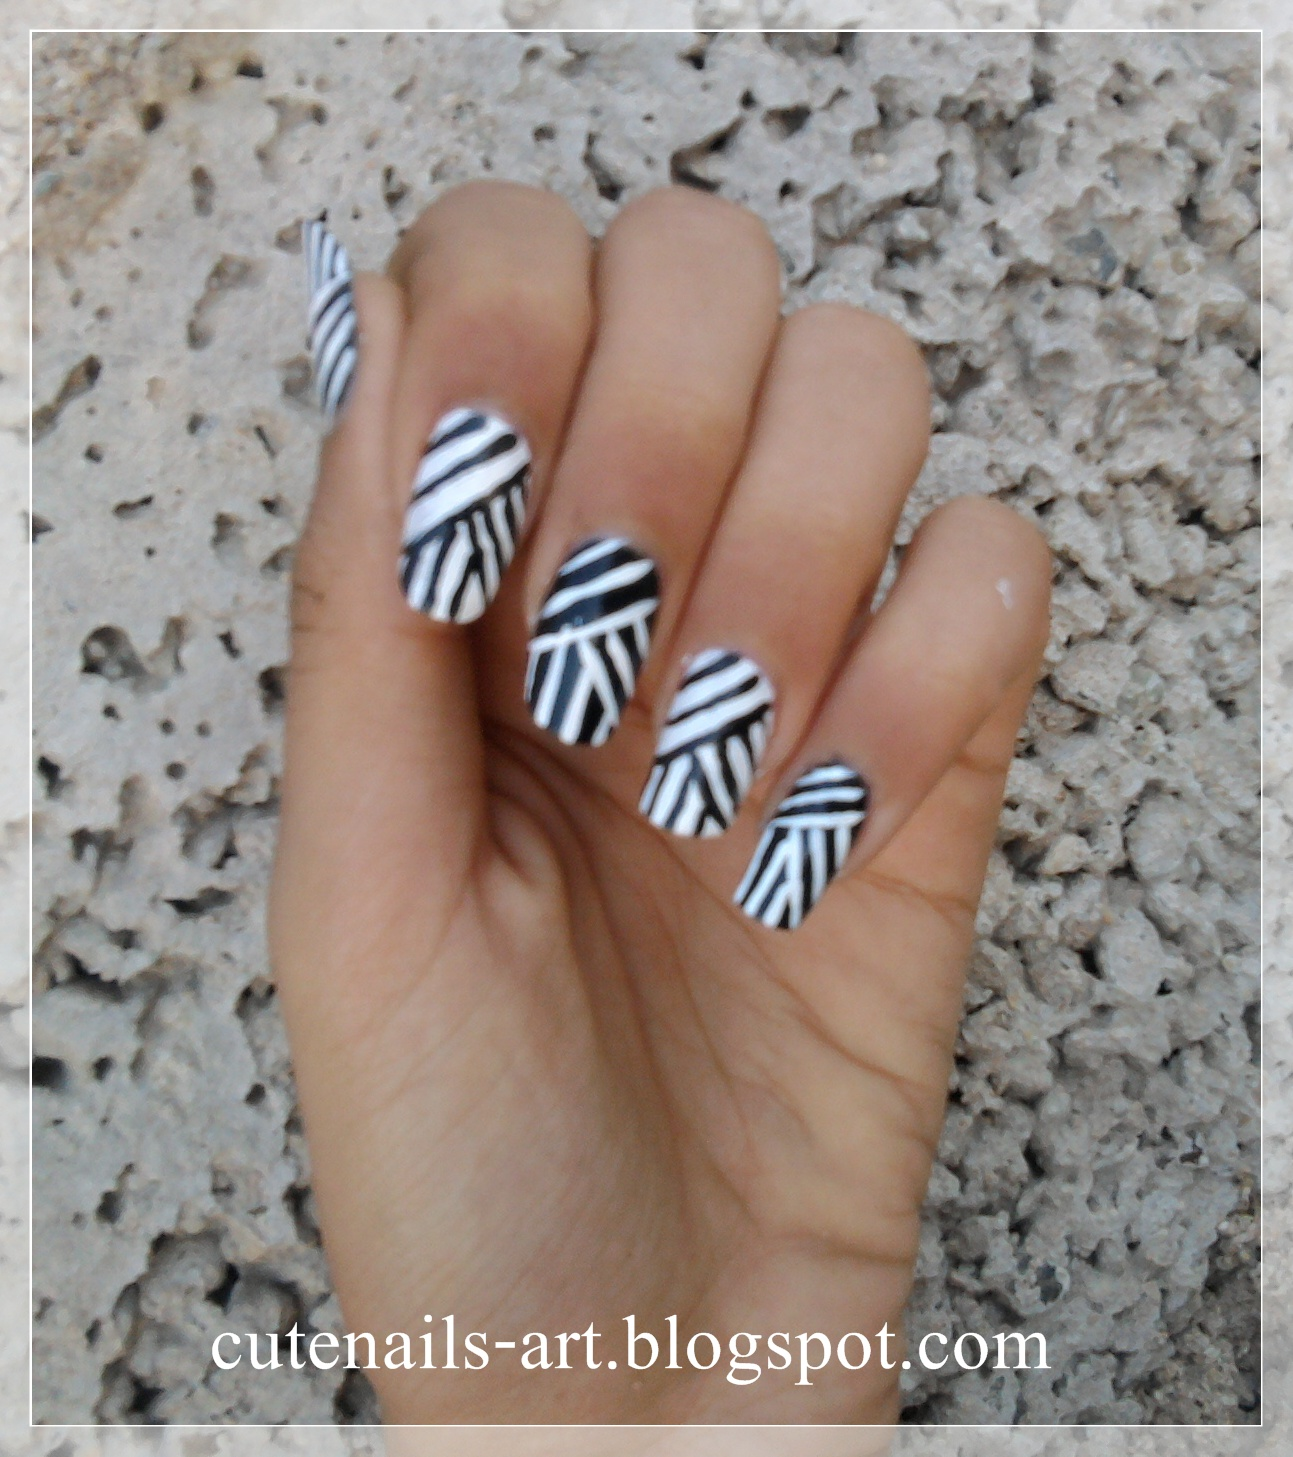 Line Art Nails : Cutenails art weaving lines nail design black and white